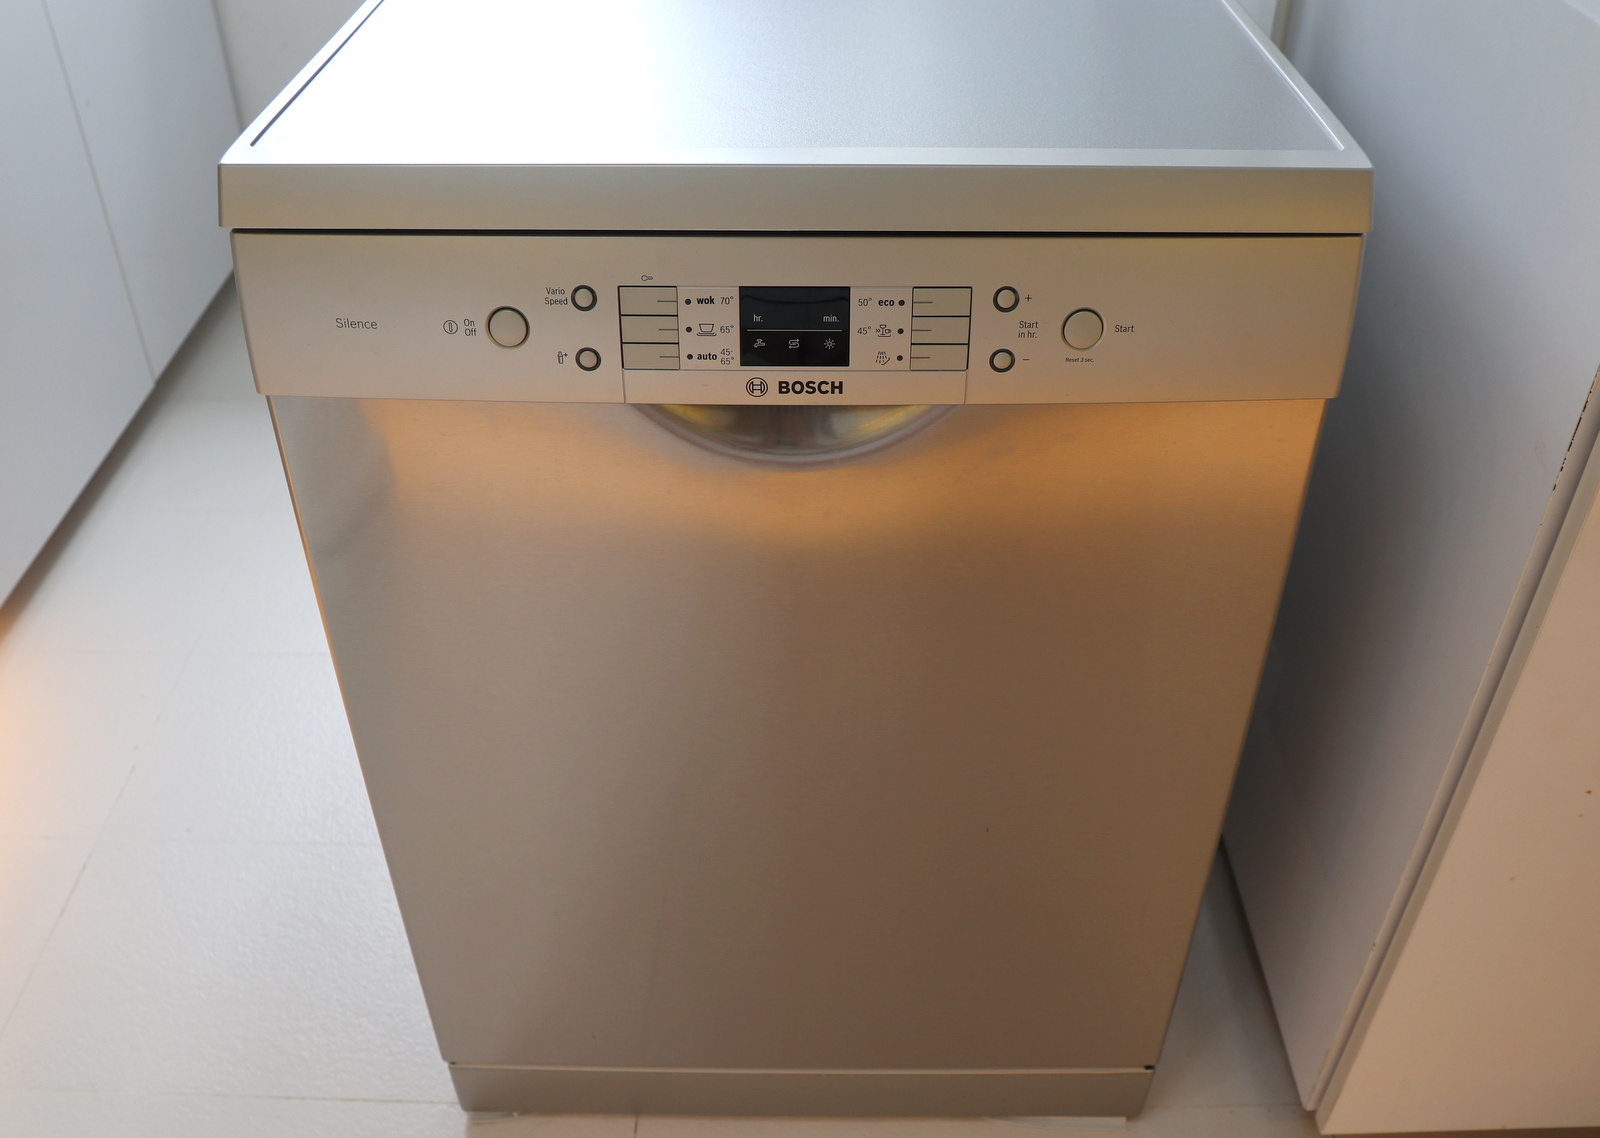 Bosch Series 6 Freestanding Dishwasher Review Camemberu